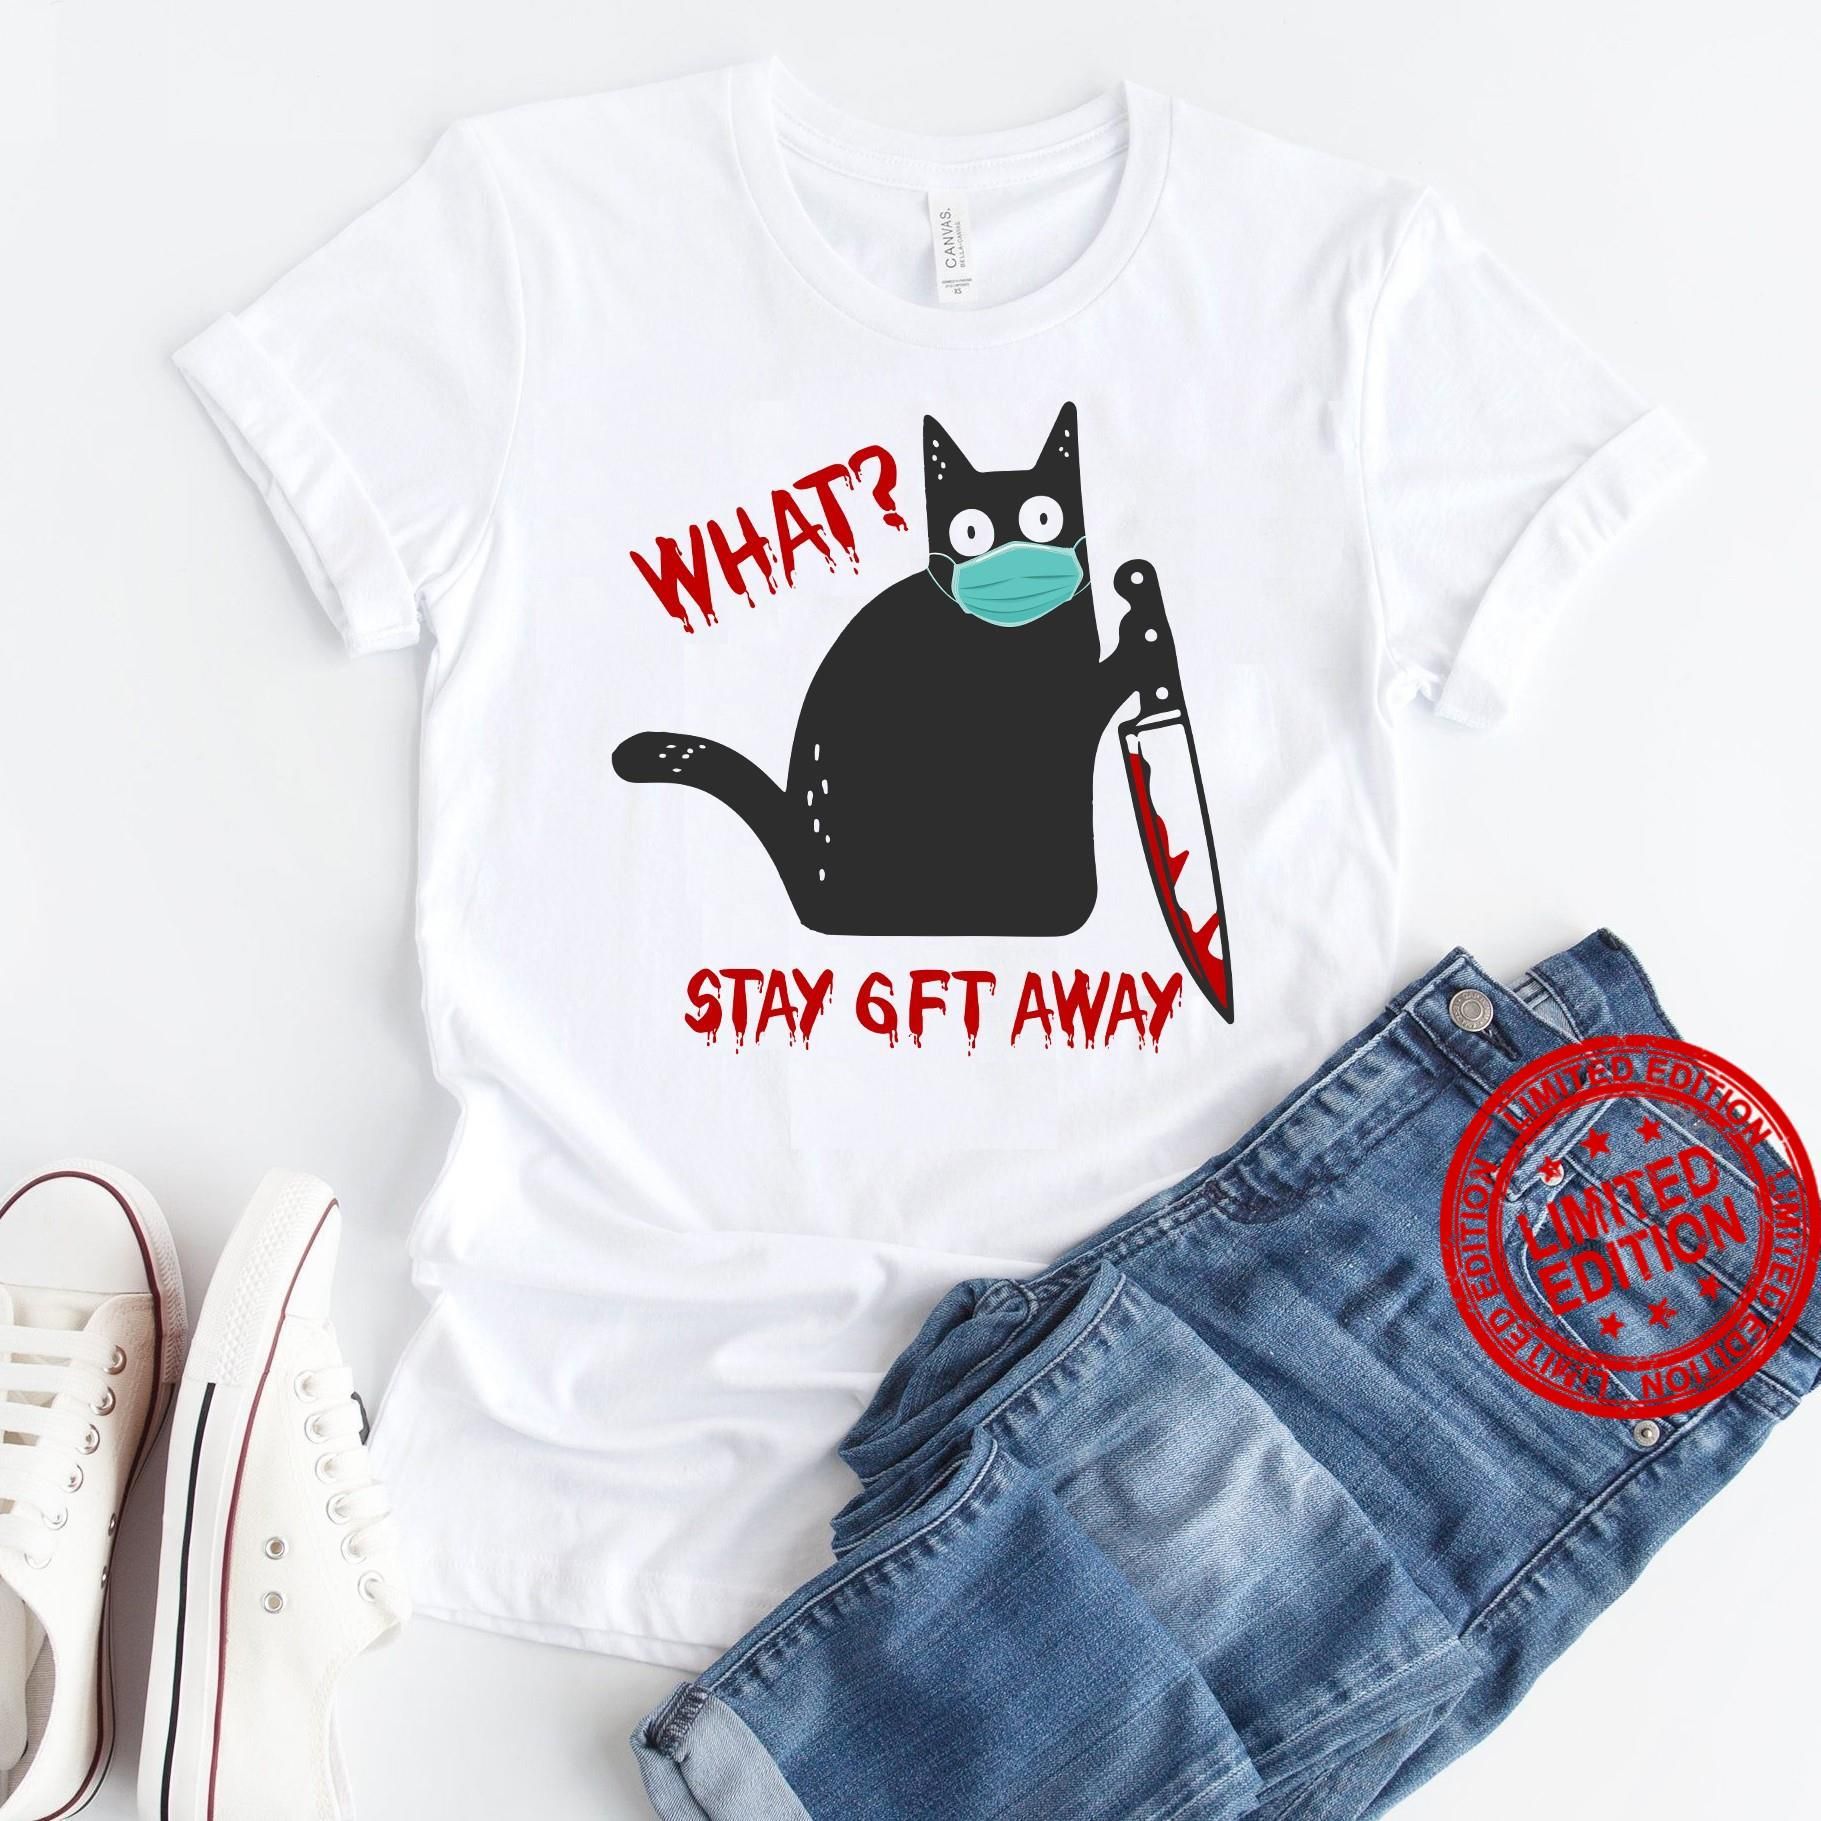 Black Cat And Knief What Stay 6ft Away Shirt